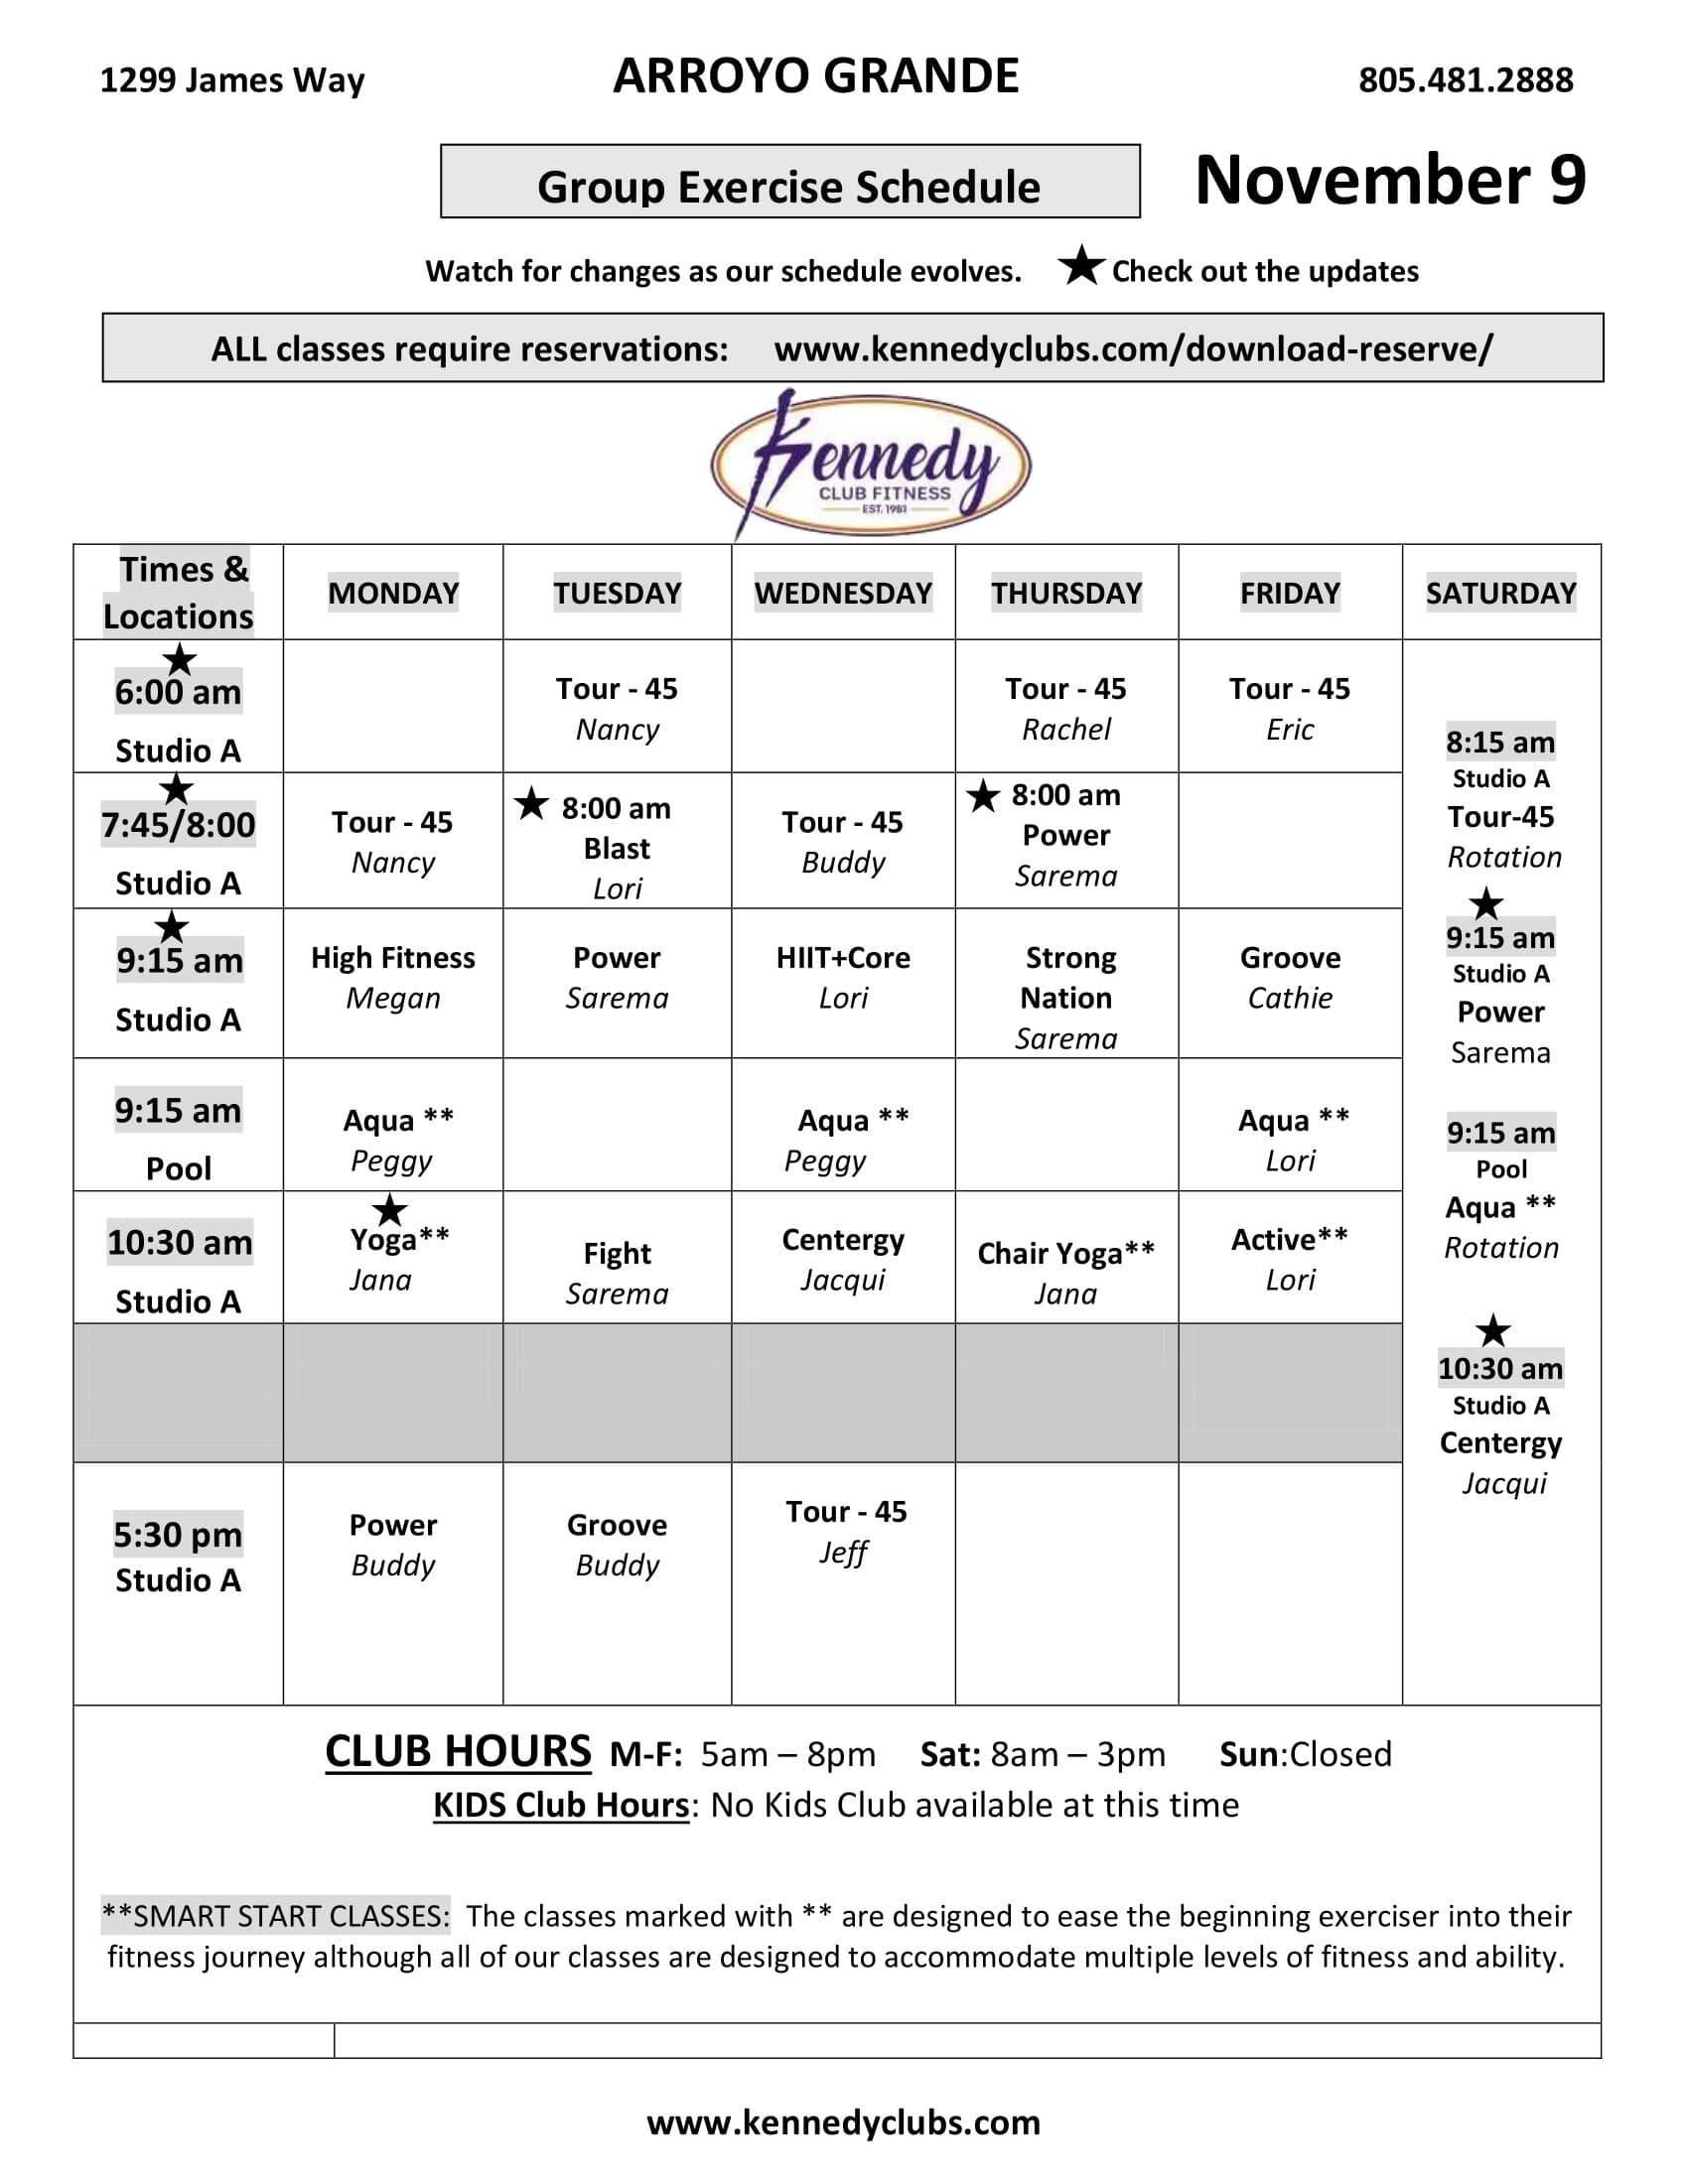 Kennedy Club Fitness Arroyo Grande Group Exercise Schedule 11 09 2020